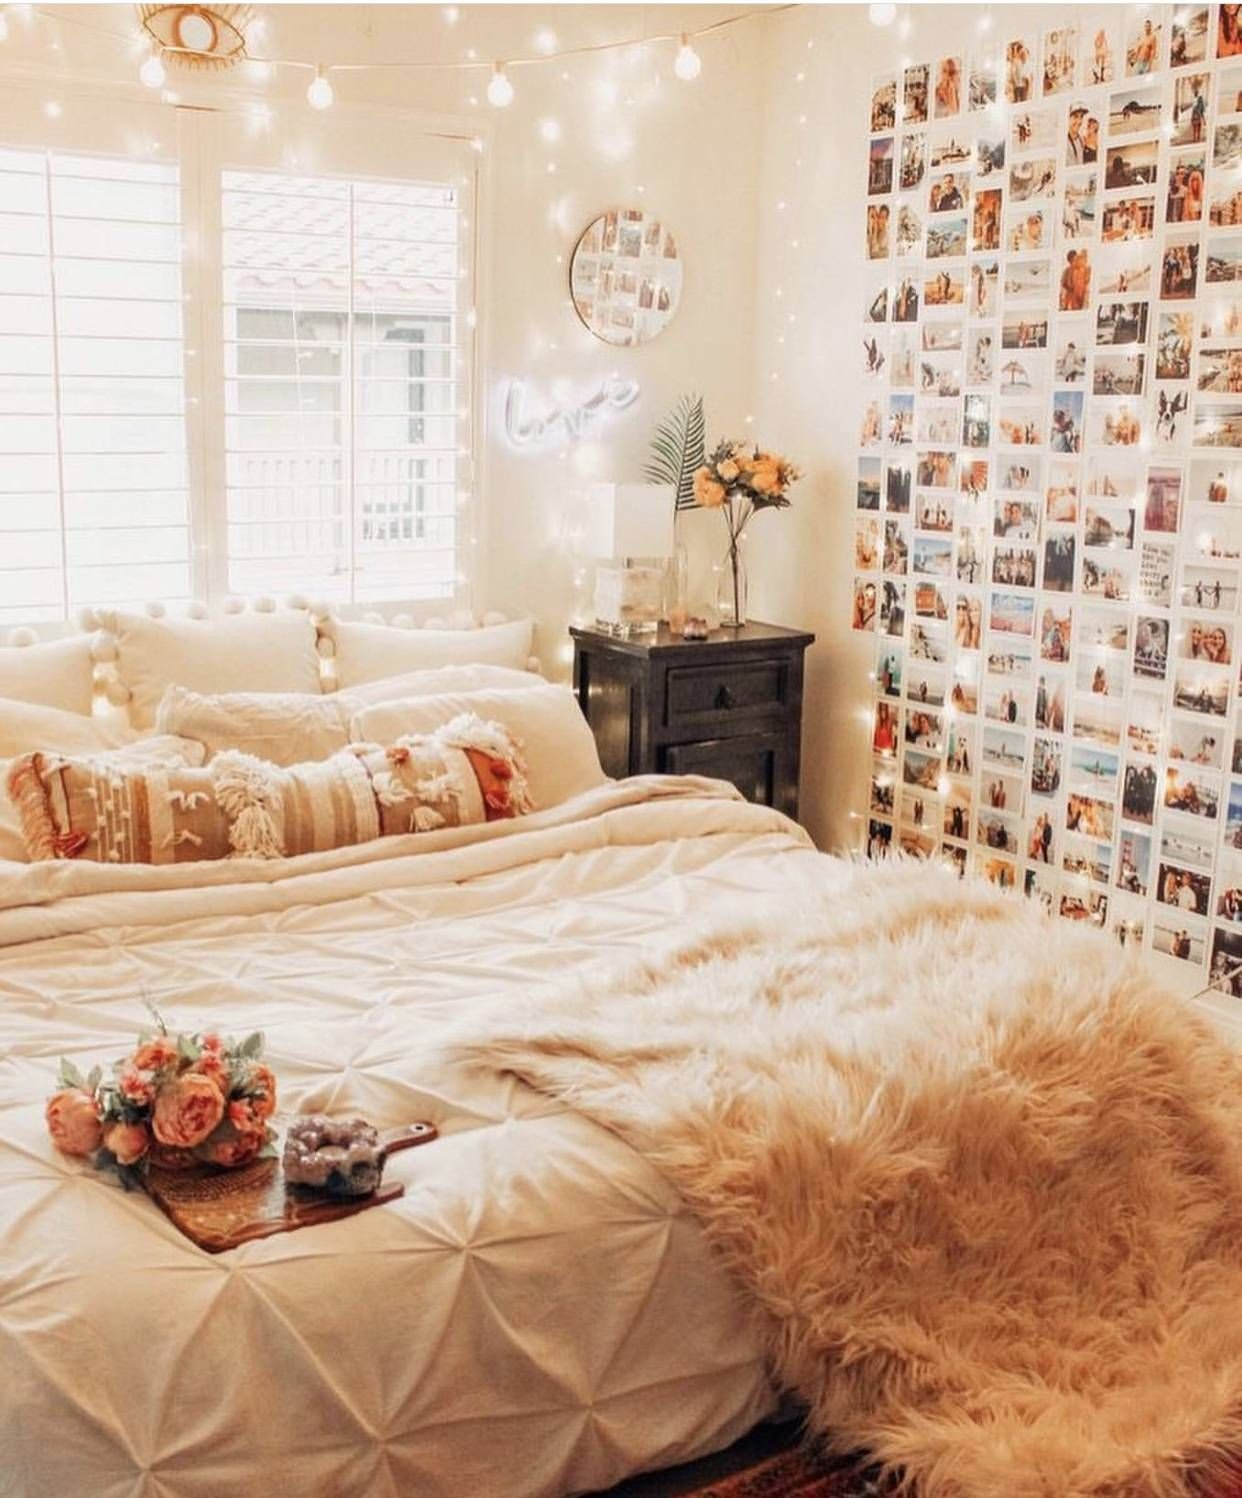 Pink and Brown Bedroom Unique Vsco Decor Ideas Must Have Decor for A Vsco Room